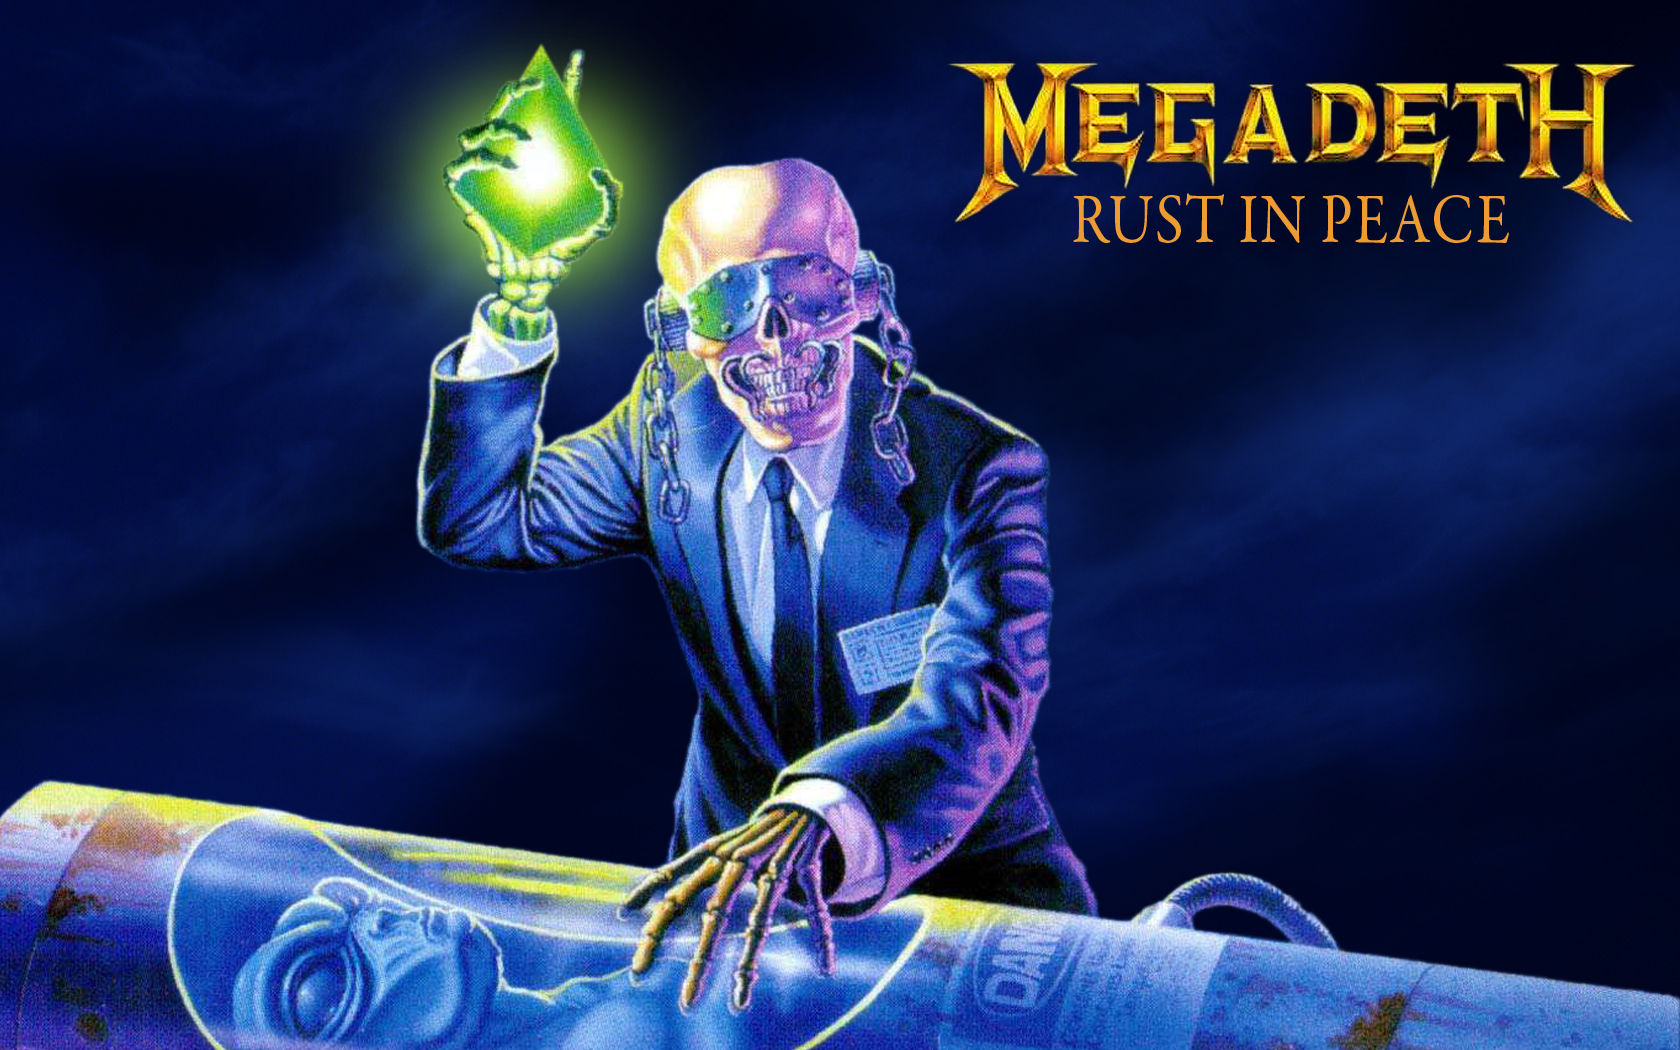 Free Download Megadeth Images Rust In Peace Wallpaper Hd Wallpaper And 1680x1050 For Your Desktop Mobile Tablet Explore 73 Megadeth Wallpaper Megadeth Wallpaper Hd 1080p Megadeth Dystopia Wallpaper Vic Rattlehead Wallpaper